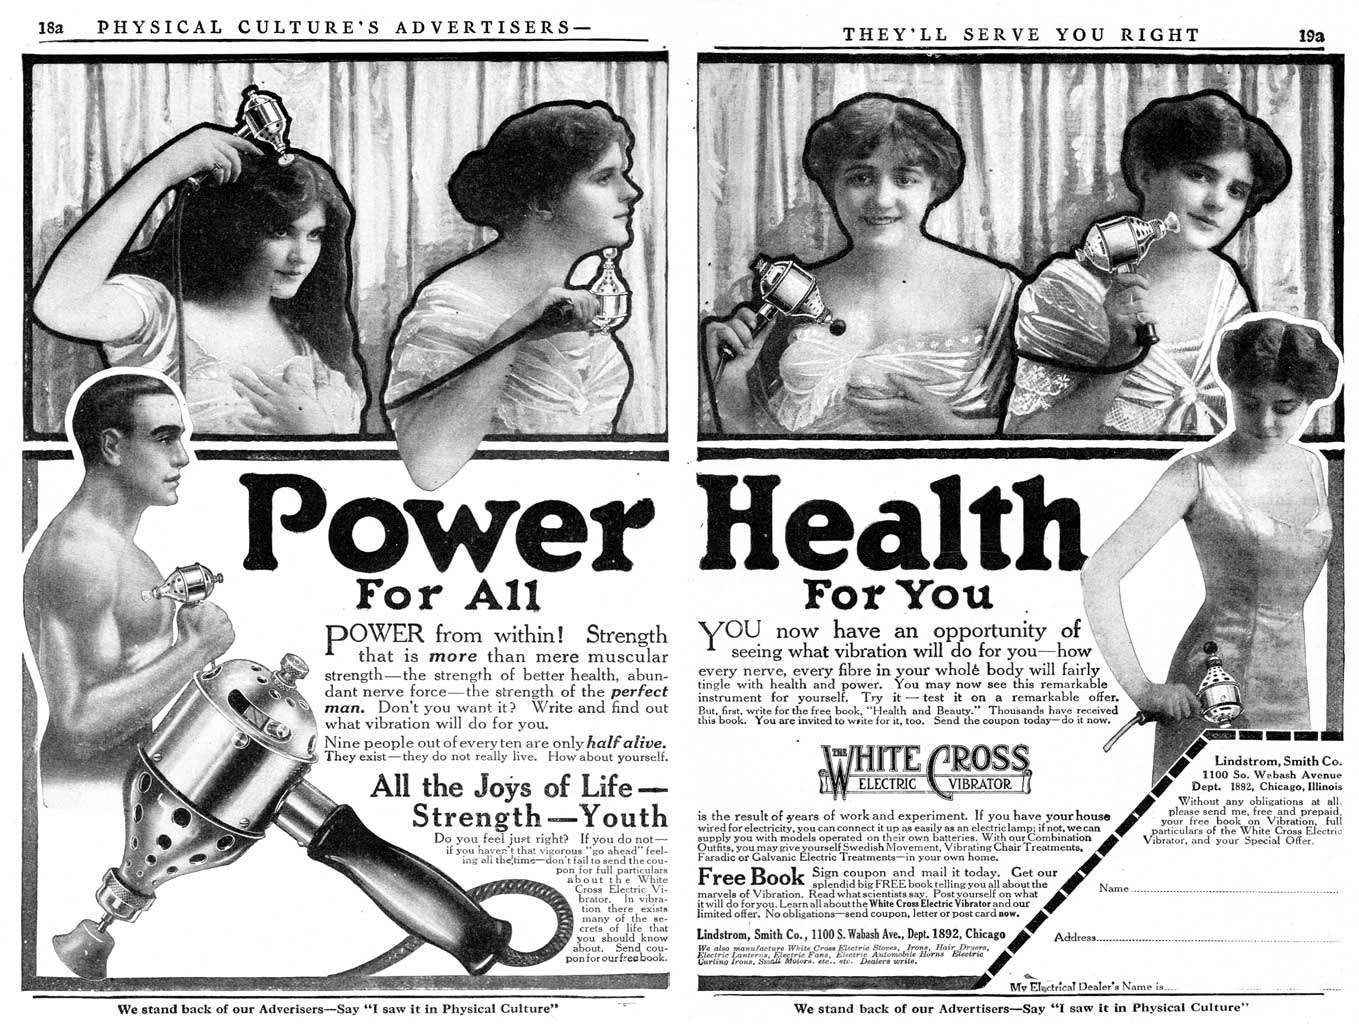 Power For All; Health For You. The White Cross Electric Vibrator